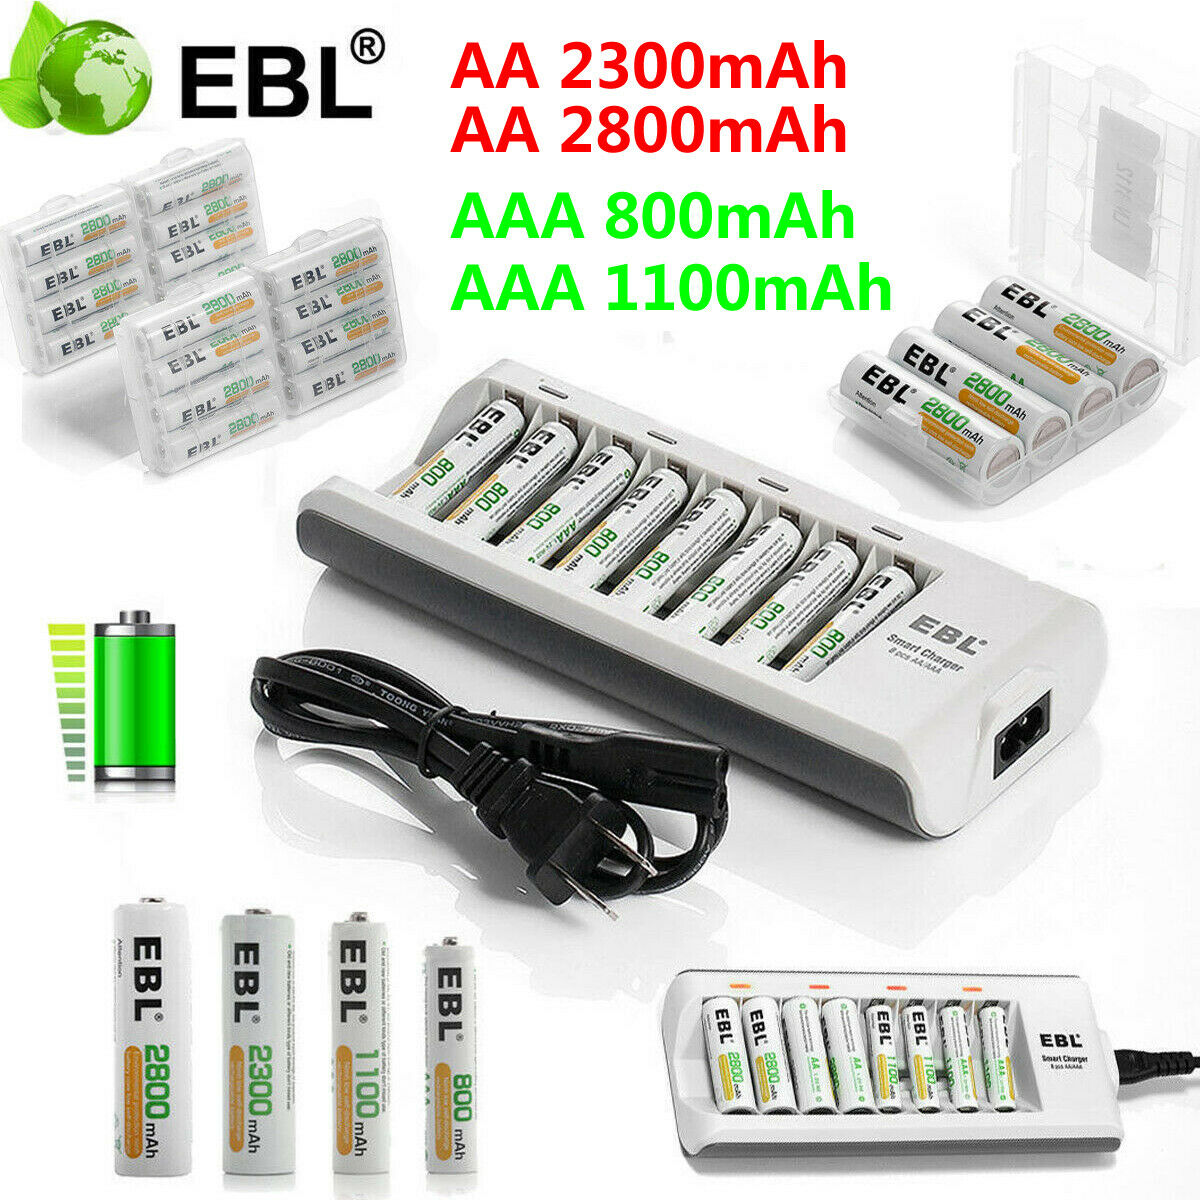 8 Slots Charger For Flashlight Lot EBL AAA AA NIMH NICD Rechargeable Batteries